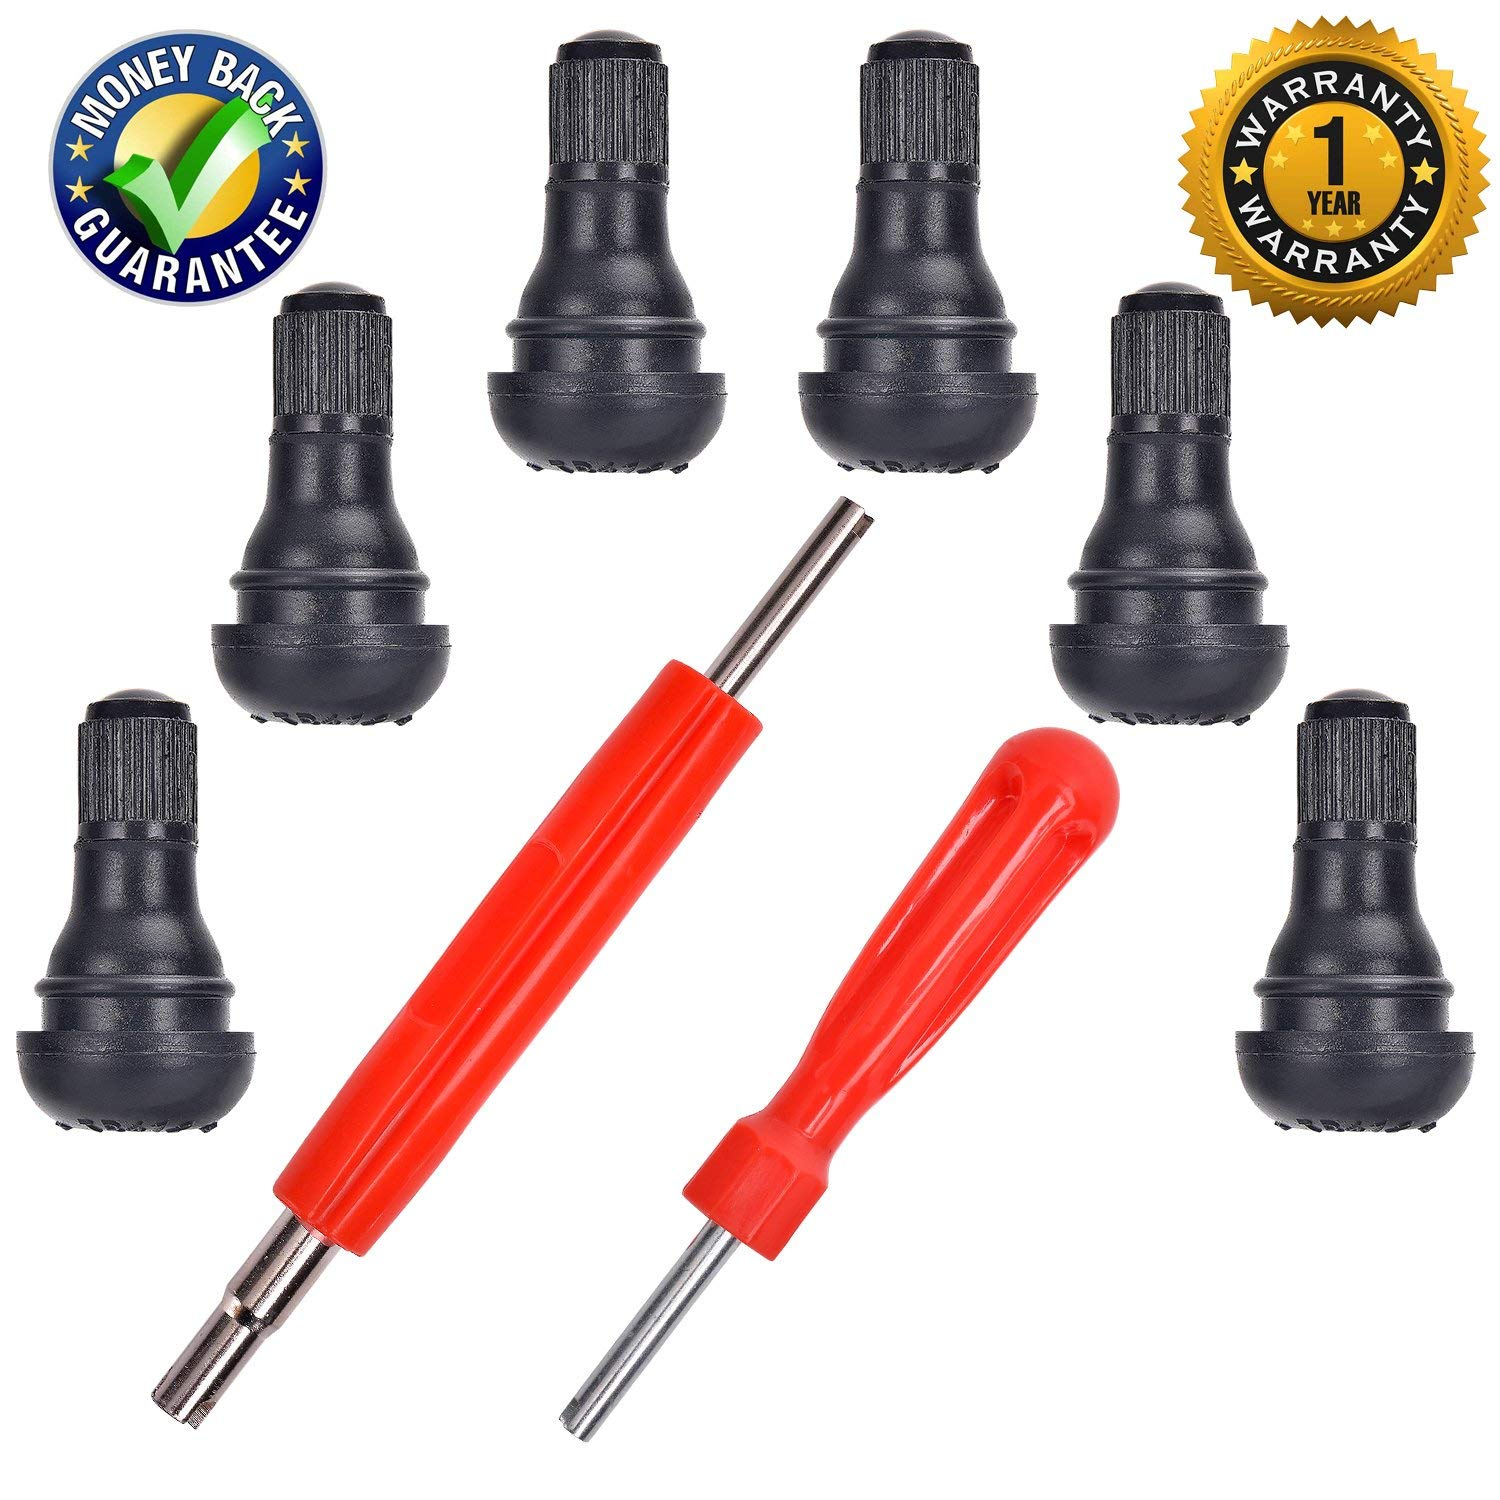 """XGroup Snap-in Short Black Rubber Valve Stem for Tubeless 0.453/"""" Inch 11.5mm Rim Holes on Standard Vehicle Tires 2 in 1 Set Dual Single Head Valve TR-416 Set of 2//4//6//8//10"""